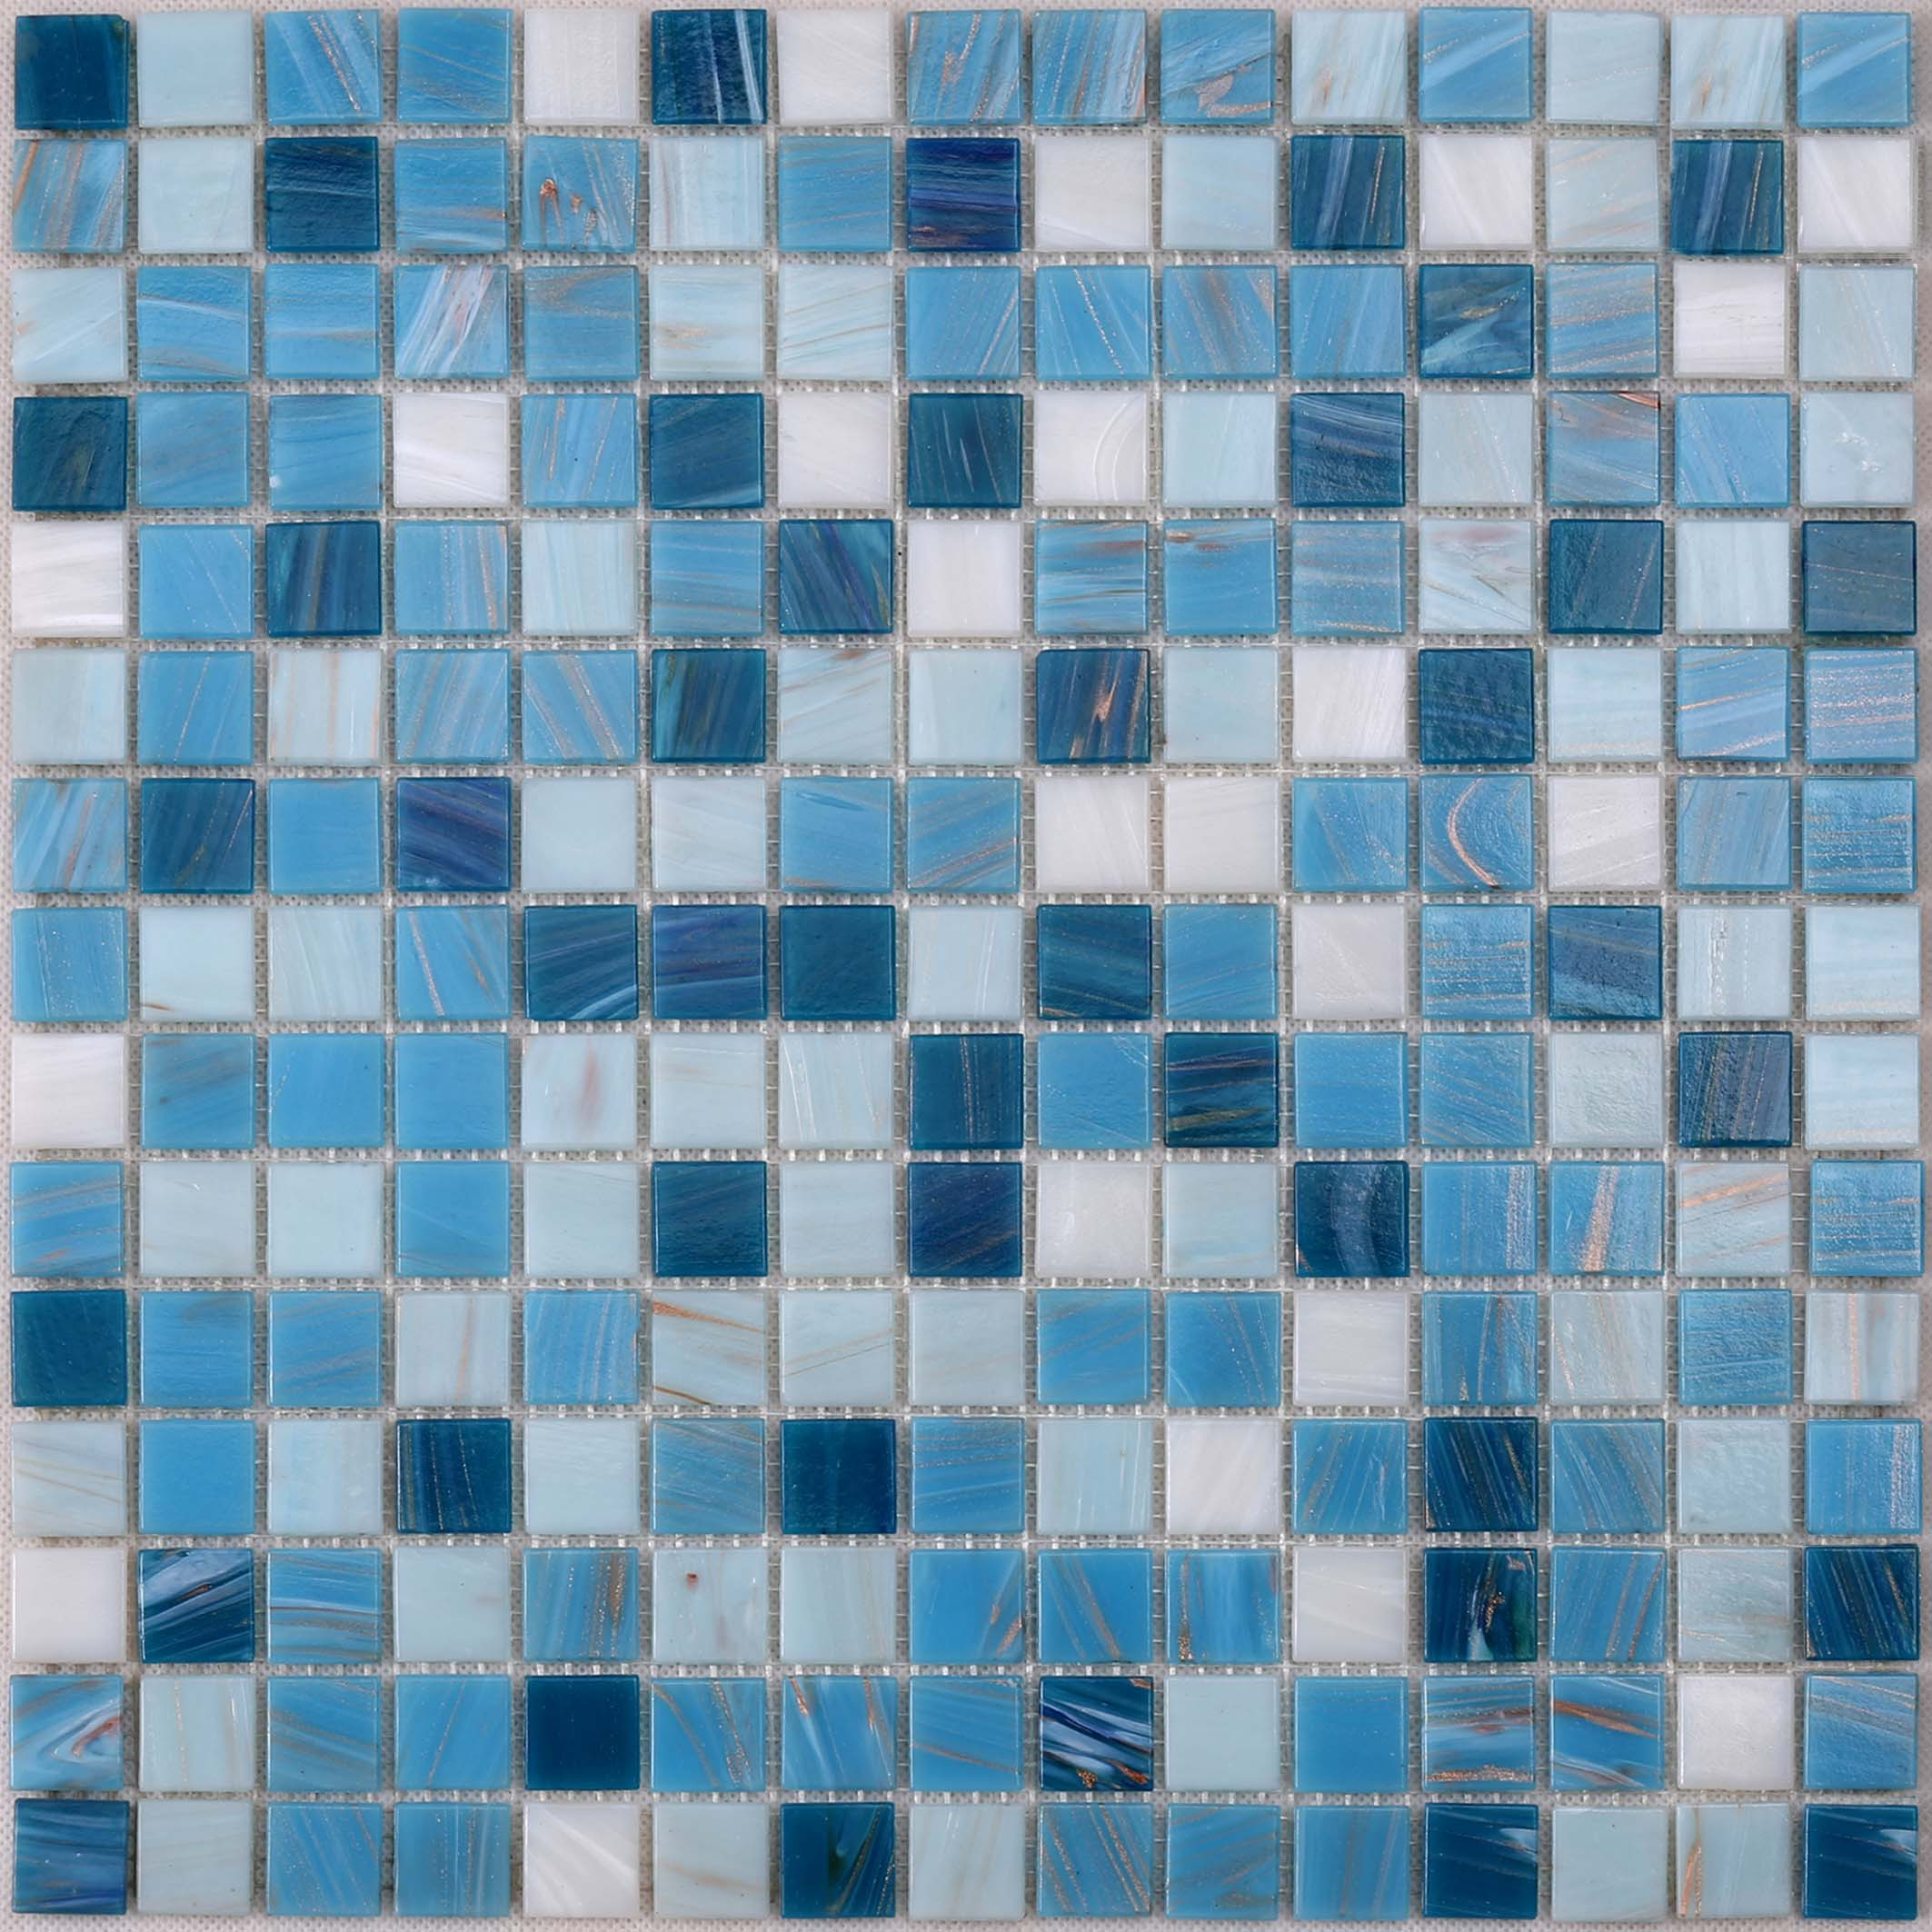 Heng Xing-Swimming Pool Tiles Supplier, Swimming Pool Tile Suppliers | Heng Xing